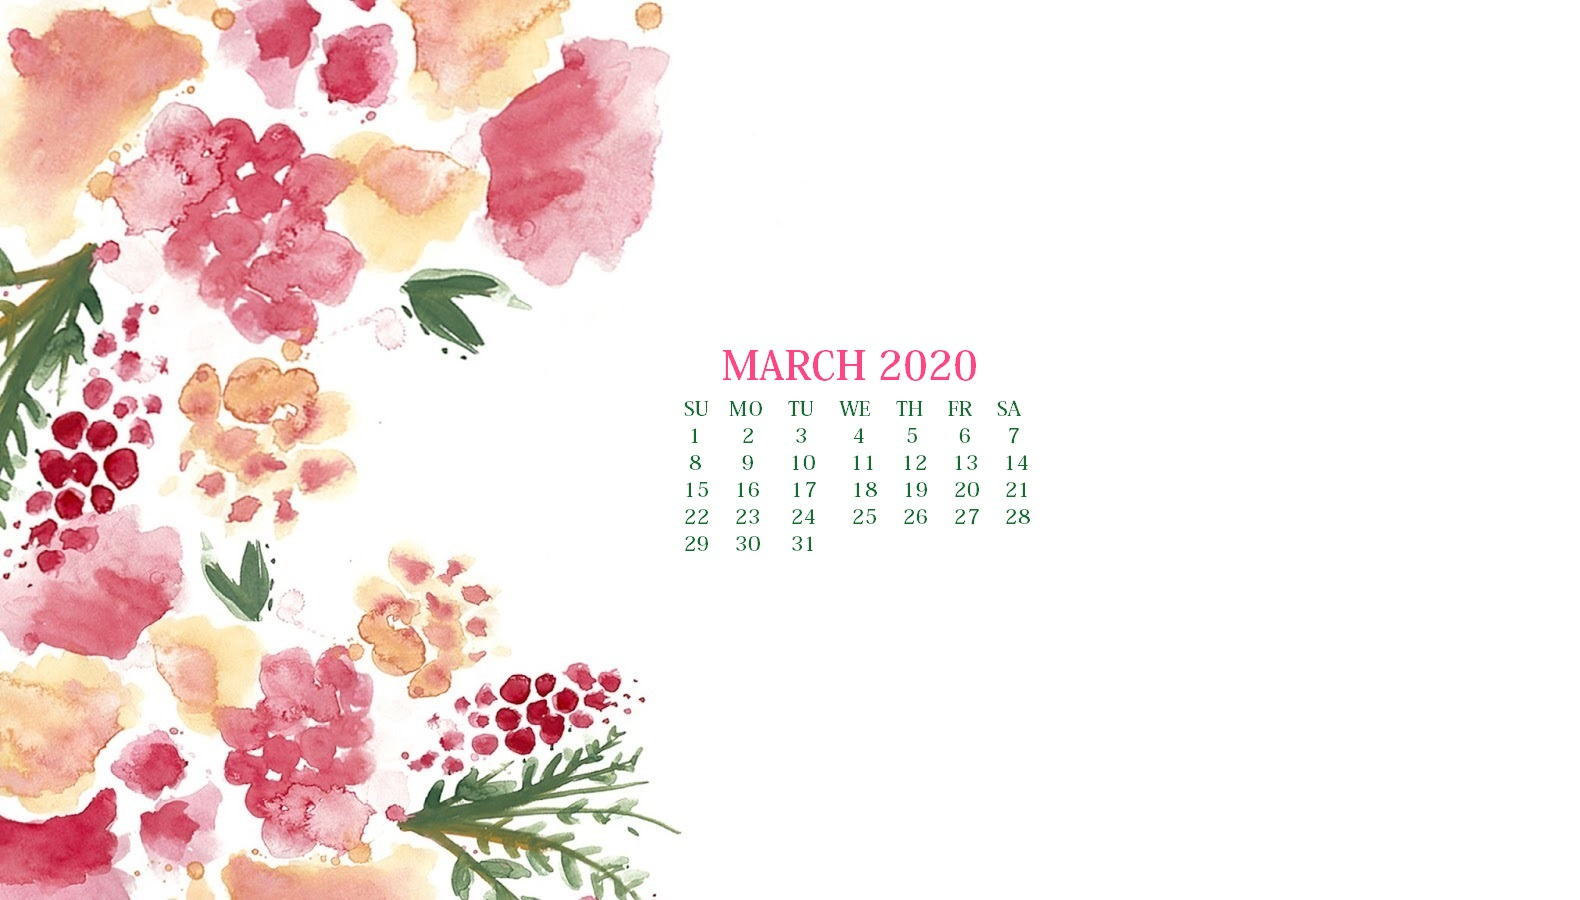 March 2020 Calendar Wallpaper